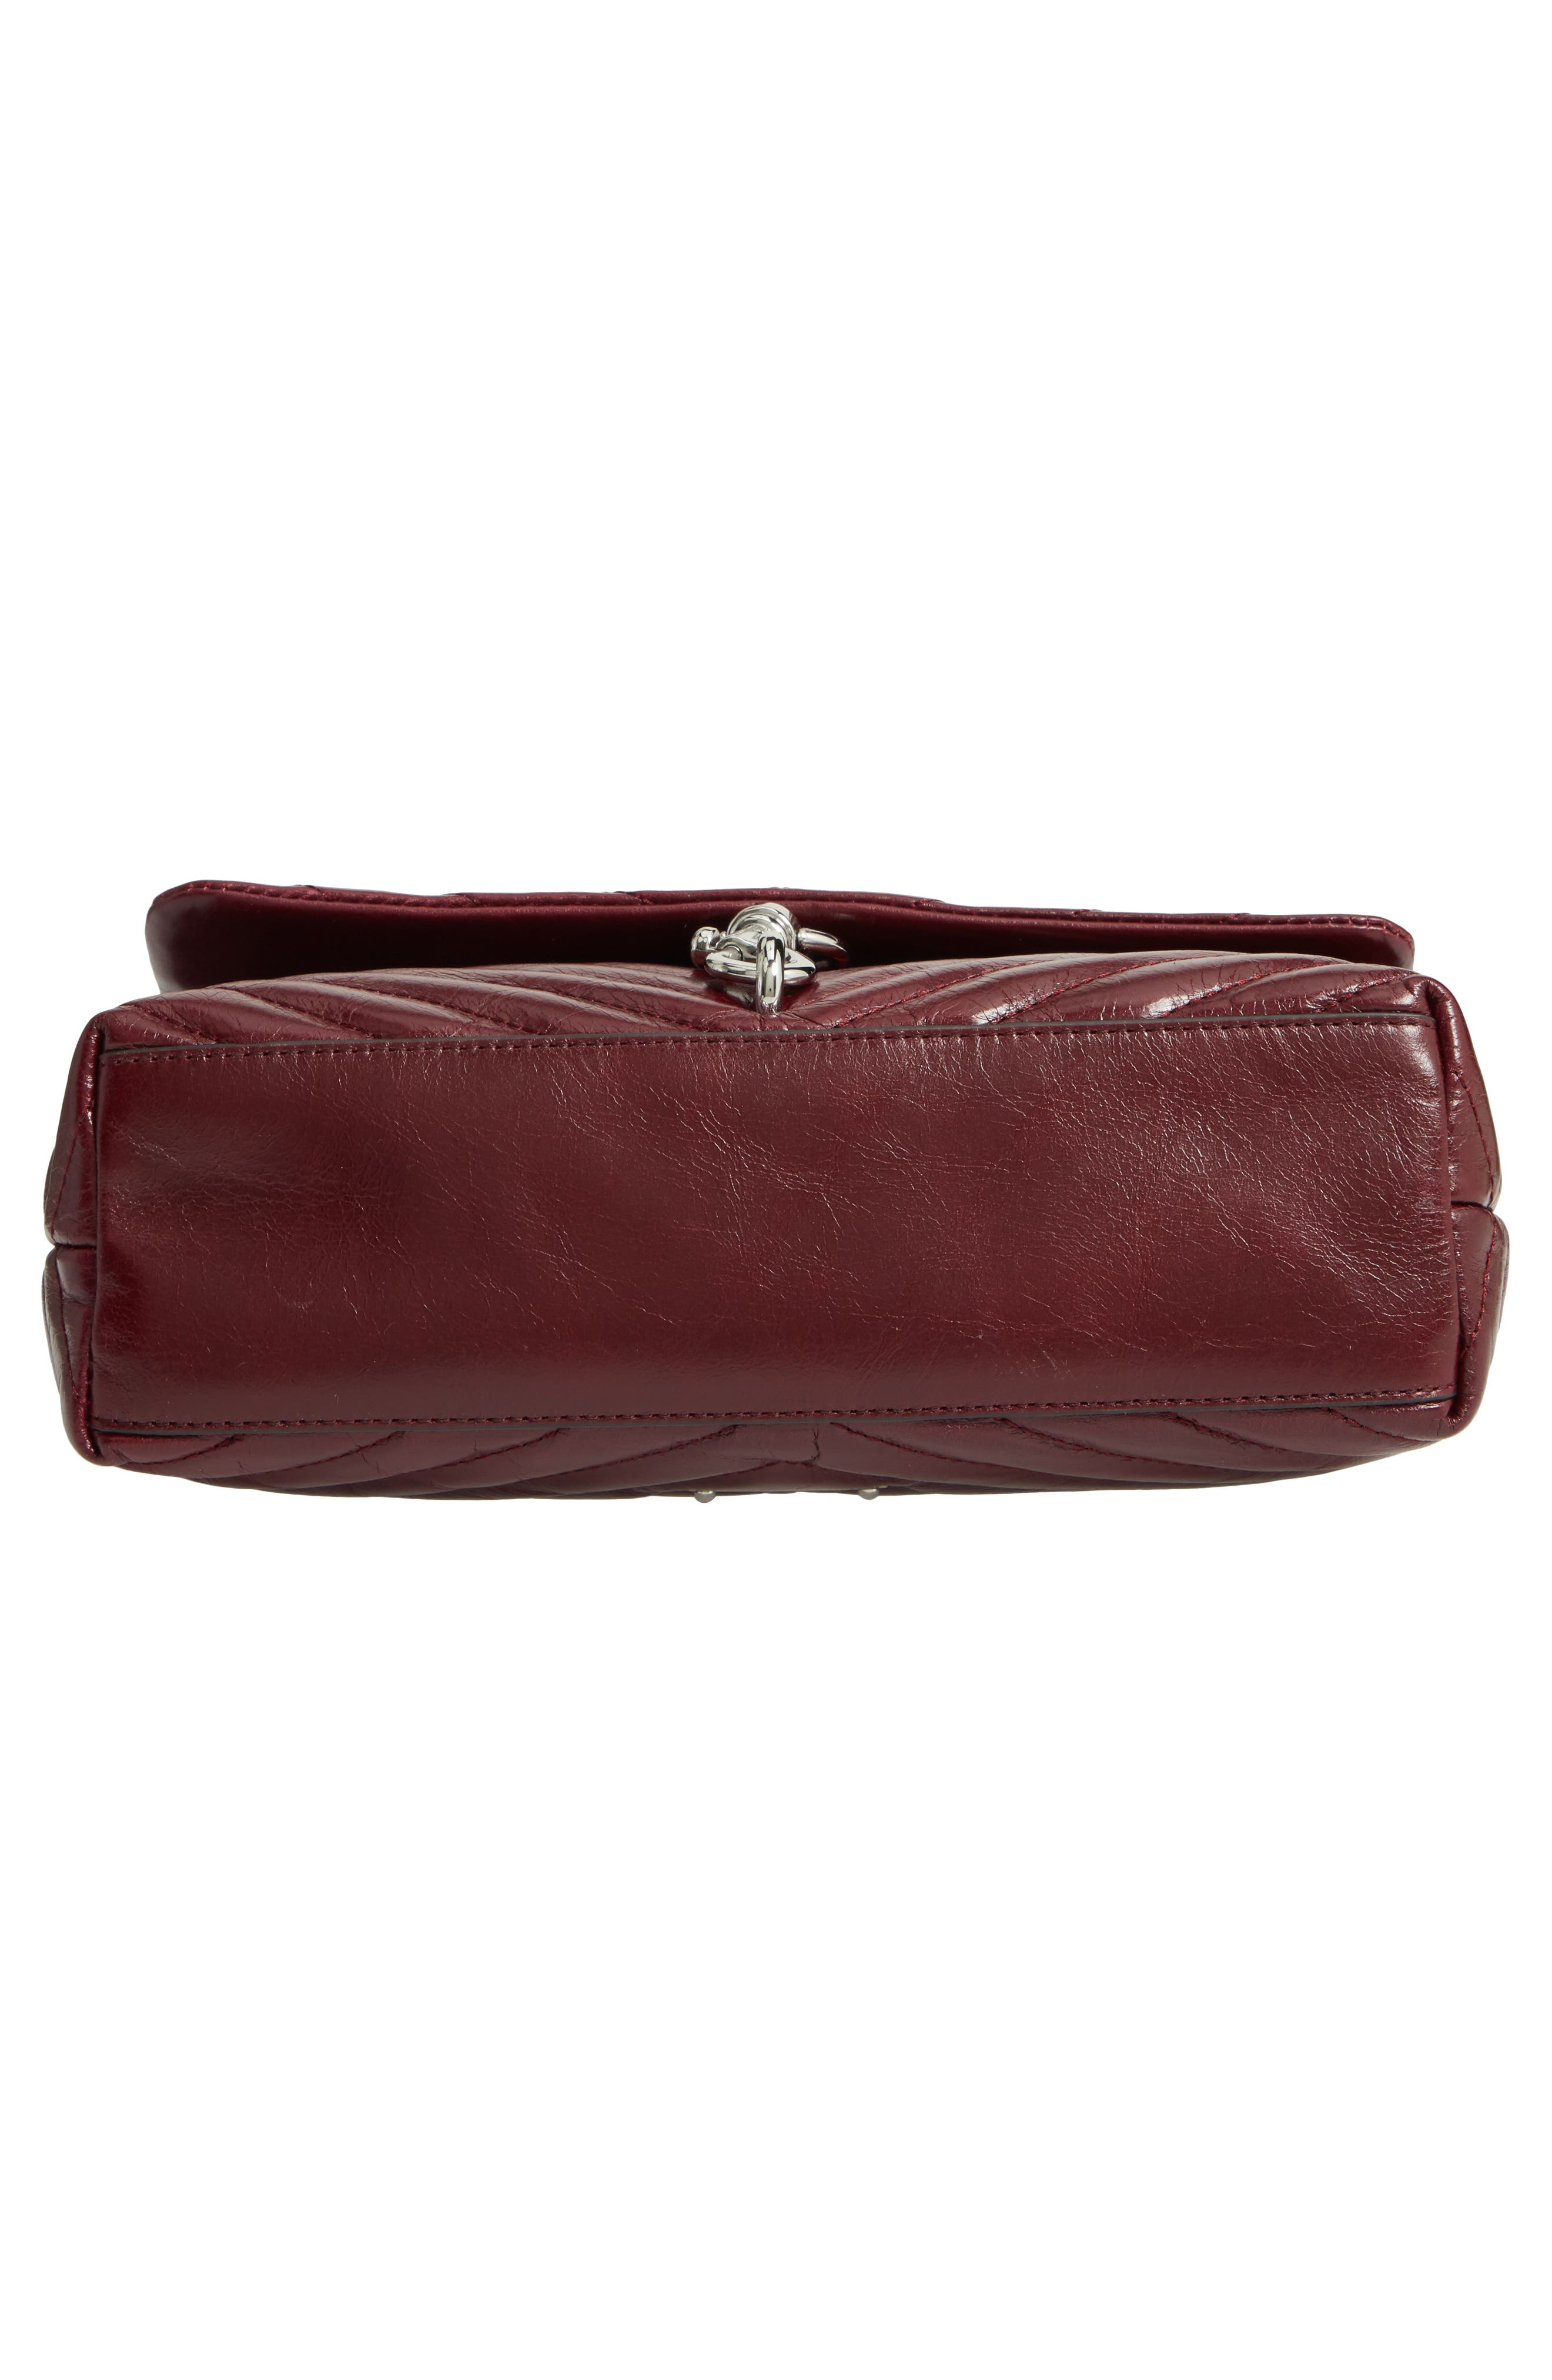 Edie Flap Front Leather Shoulder Bag,                             Alternate thumbnail 6, color,                             BORDEAUX